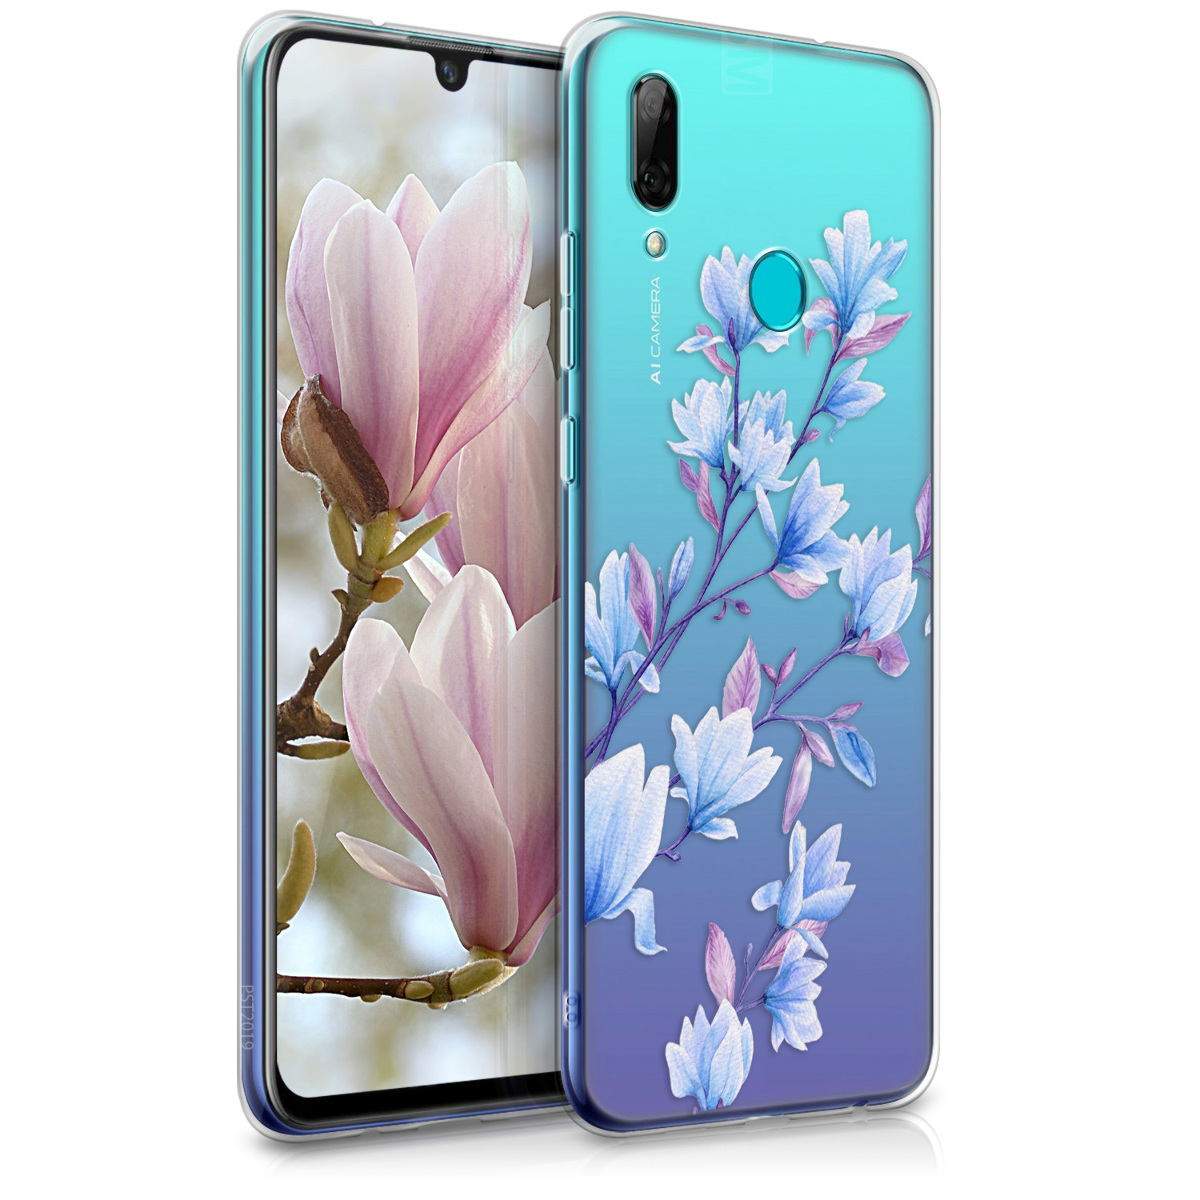 KW Θήκη Σιλικόνης Huawei P Smart 2019 - Blue / Violet / Transparent (47388.15)